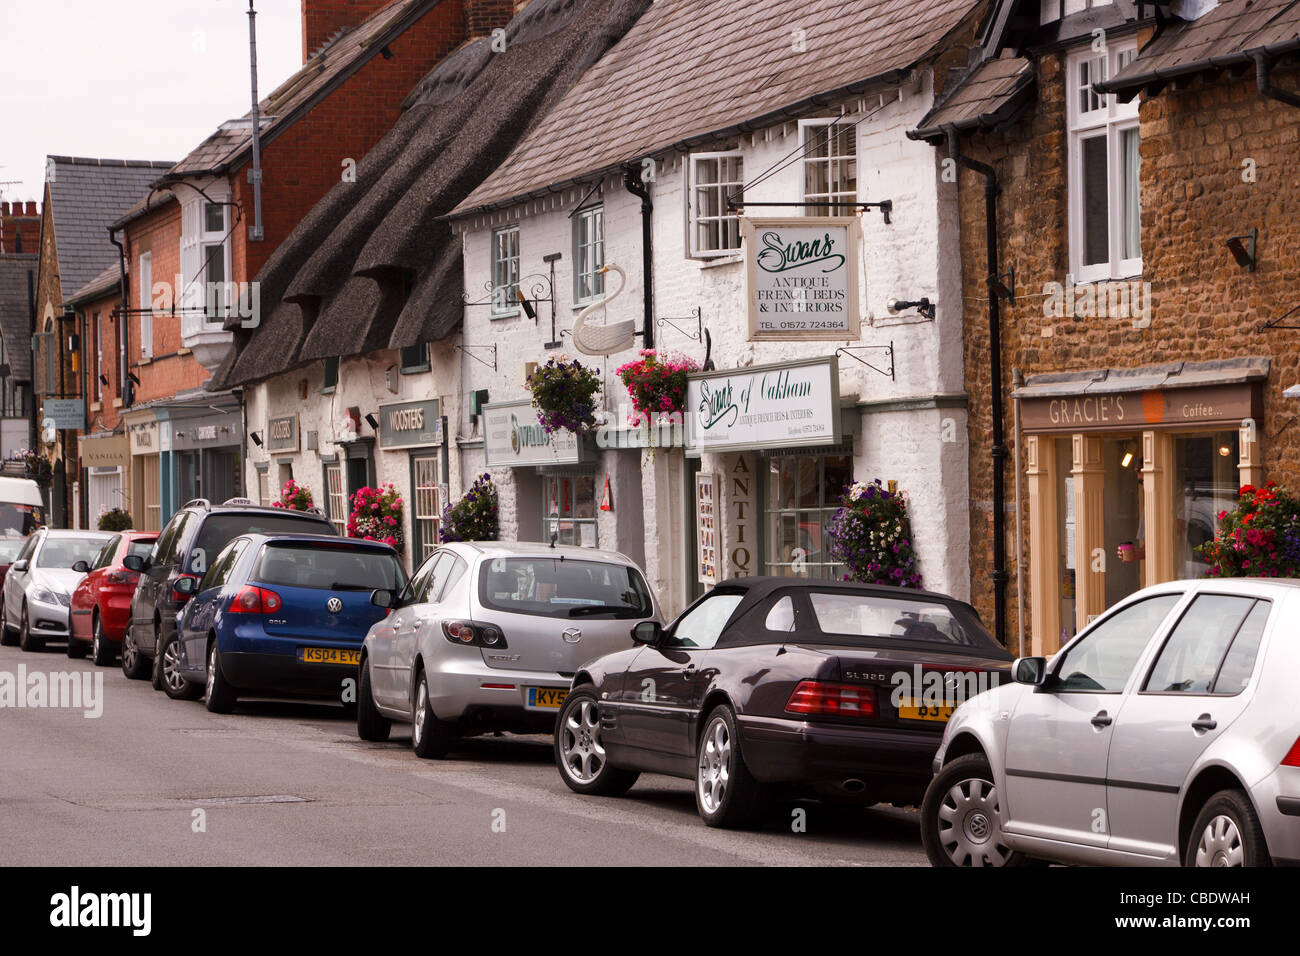 Old shop fronts, signs and parked cars along town centre shopping street, Mill street, Oakham, Rutland, England, - Stock Image